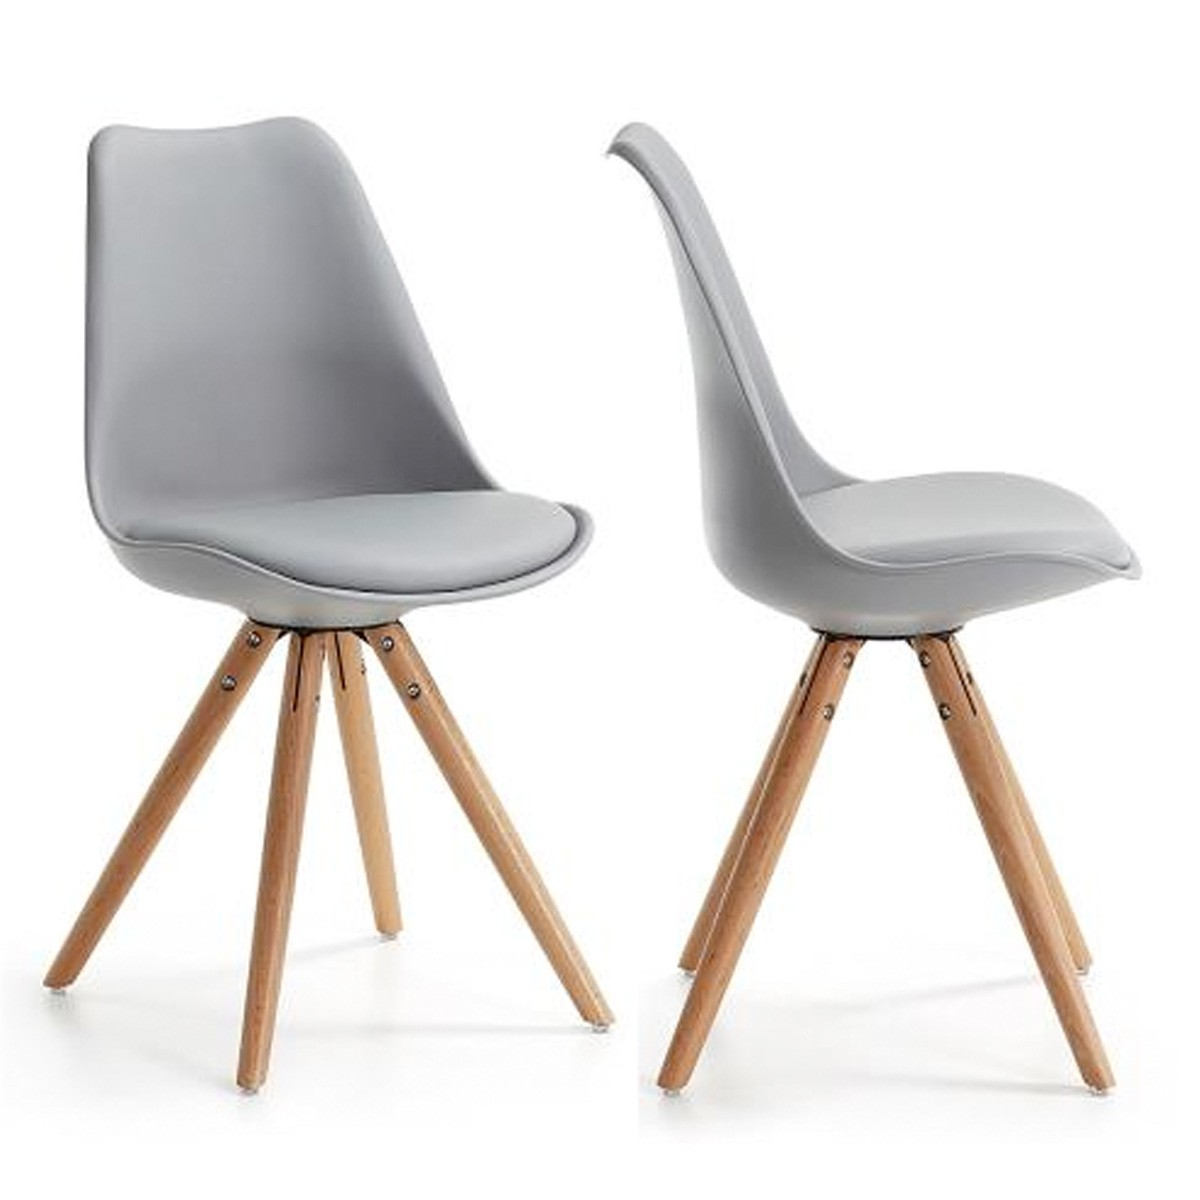 Chaises design une belle s lection d co tendance for Designer de chaise celebre